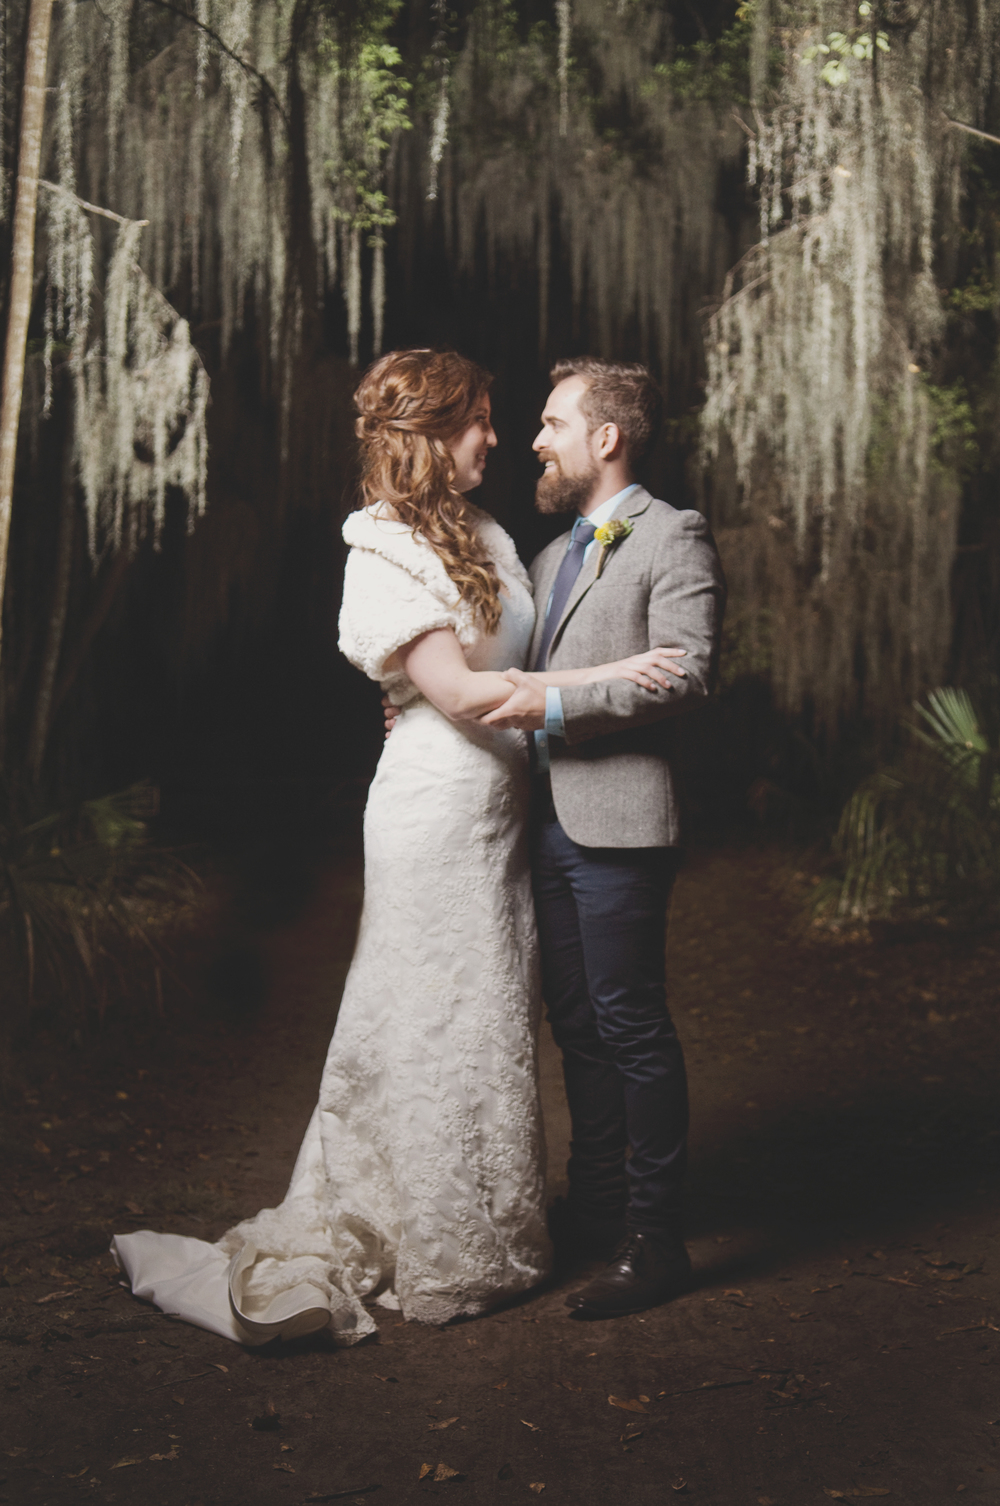 amber-and-david-ivory-and-beau-bridal-boutique-lytle-foto-savannah-wedding-dresses-savannah-wedding-planner-savannah-event-designer-savannah-weddings-wormsloe-wedding-cohens-retreat-wedding-indie-wedding-handmade-wedding-historic-33.jpg